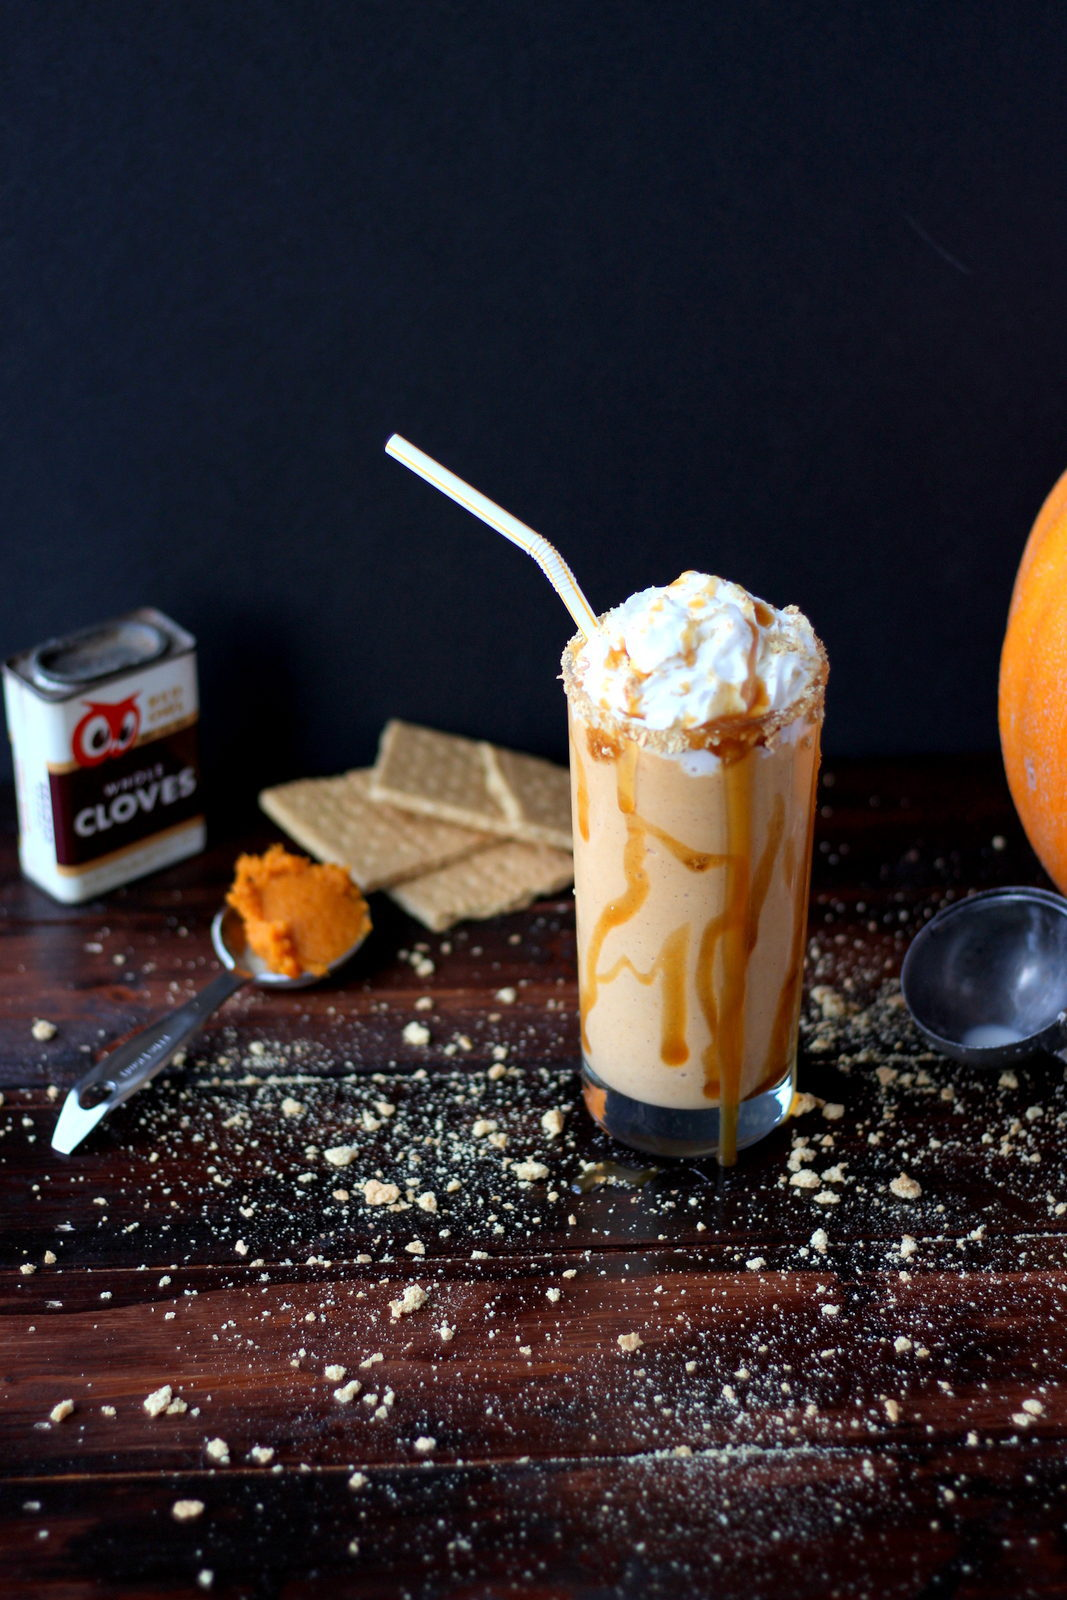 Indulgent Pumpkin Pie Malt - tastes just like pumpkin pie and a great fall and Thanksgiving dessert recipe! thewoodenskillet.com #foodphotography #foodstyling